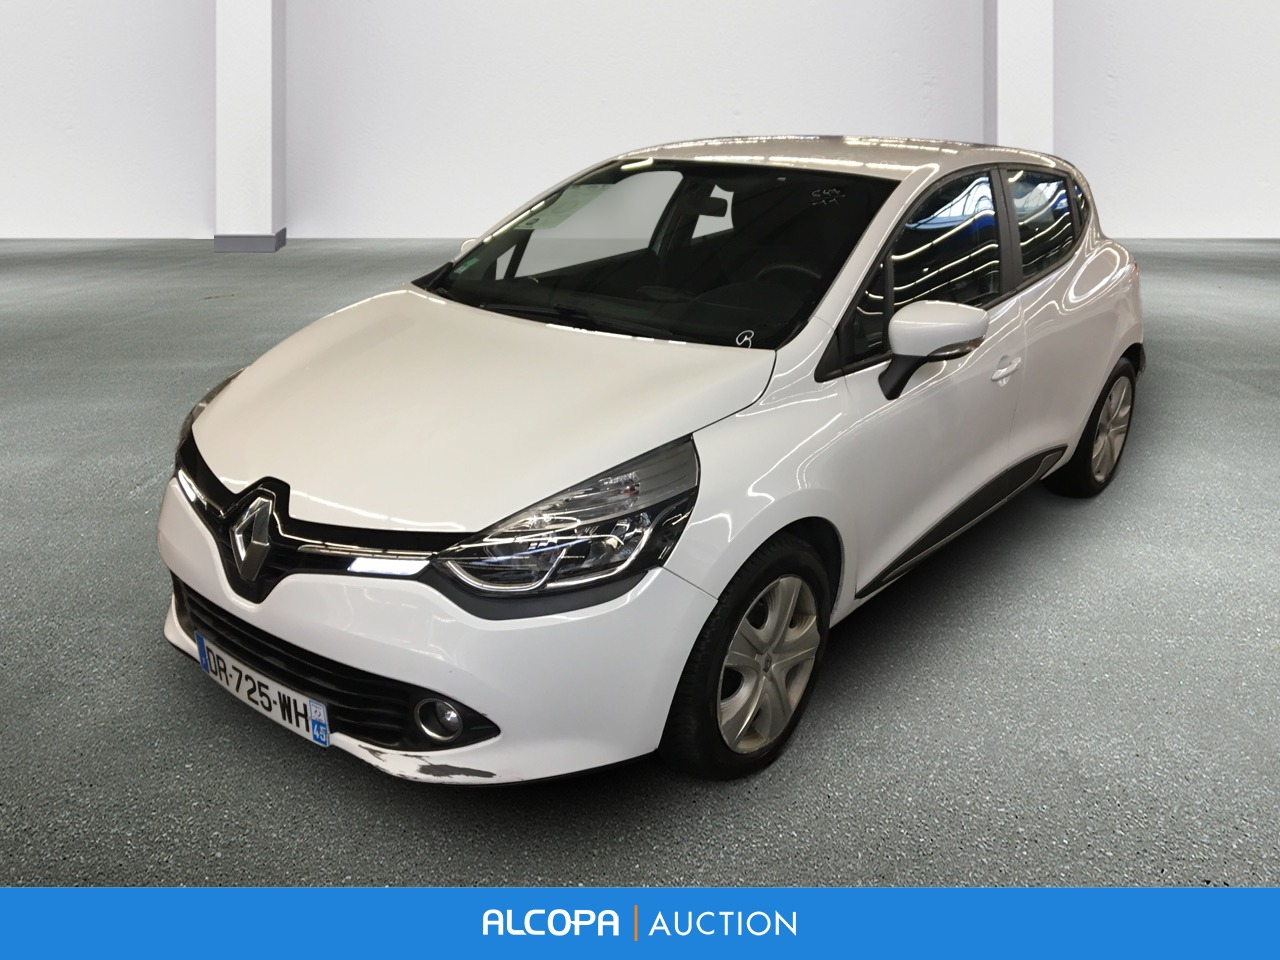 renault clio iv business clio iv dci 75 eco2 90g business alcopa auction. Black Bedroom Furniture Sets. Home Design Ideas